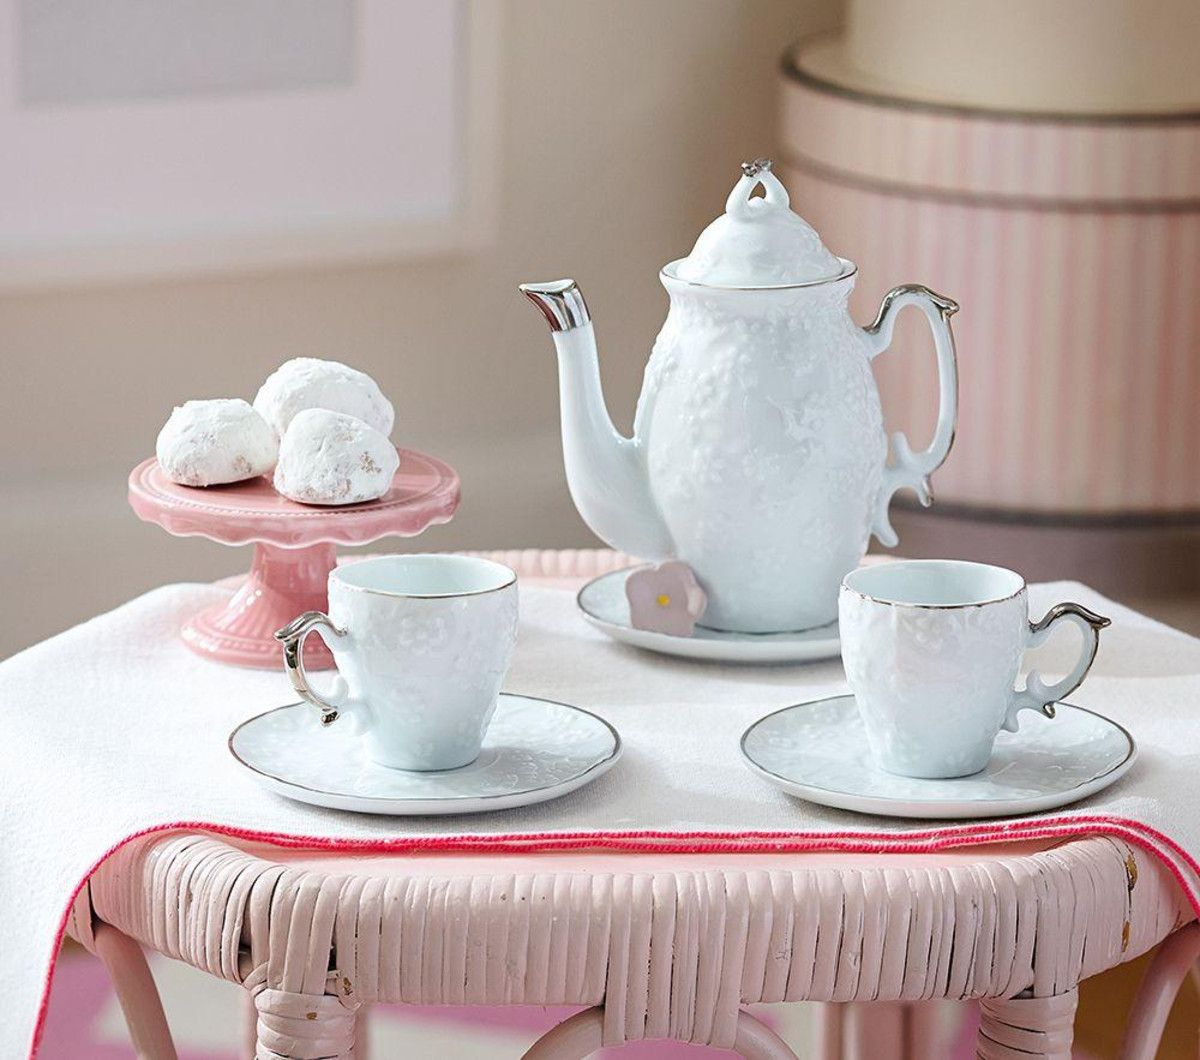 A Tea Set With The Look Of Family Heirloom Sized Just For Kids